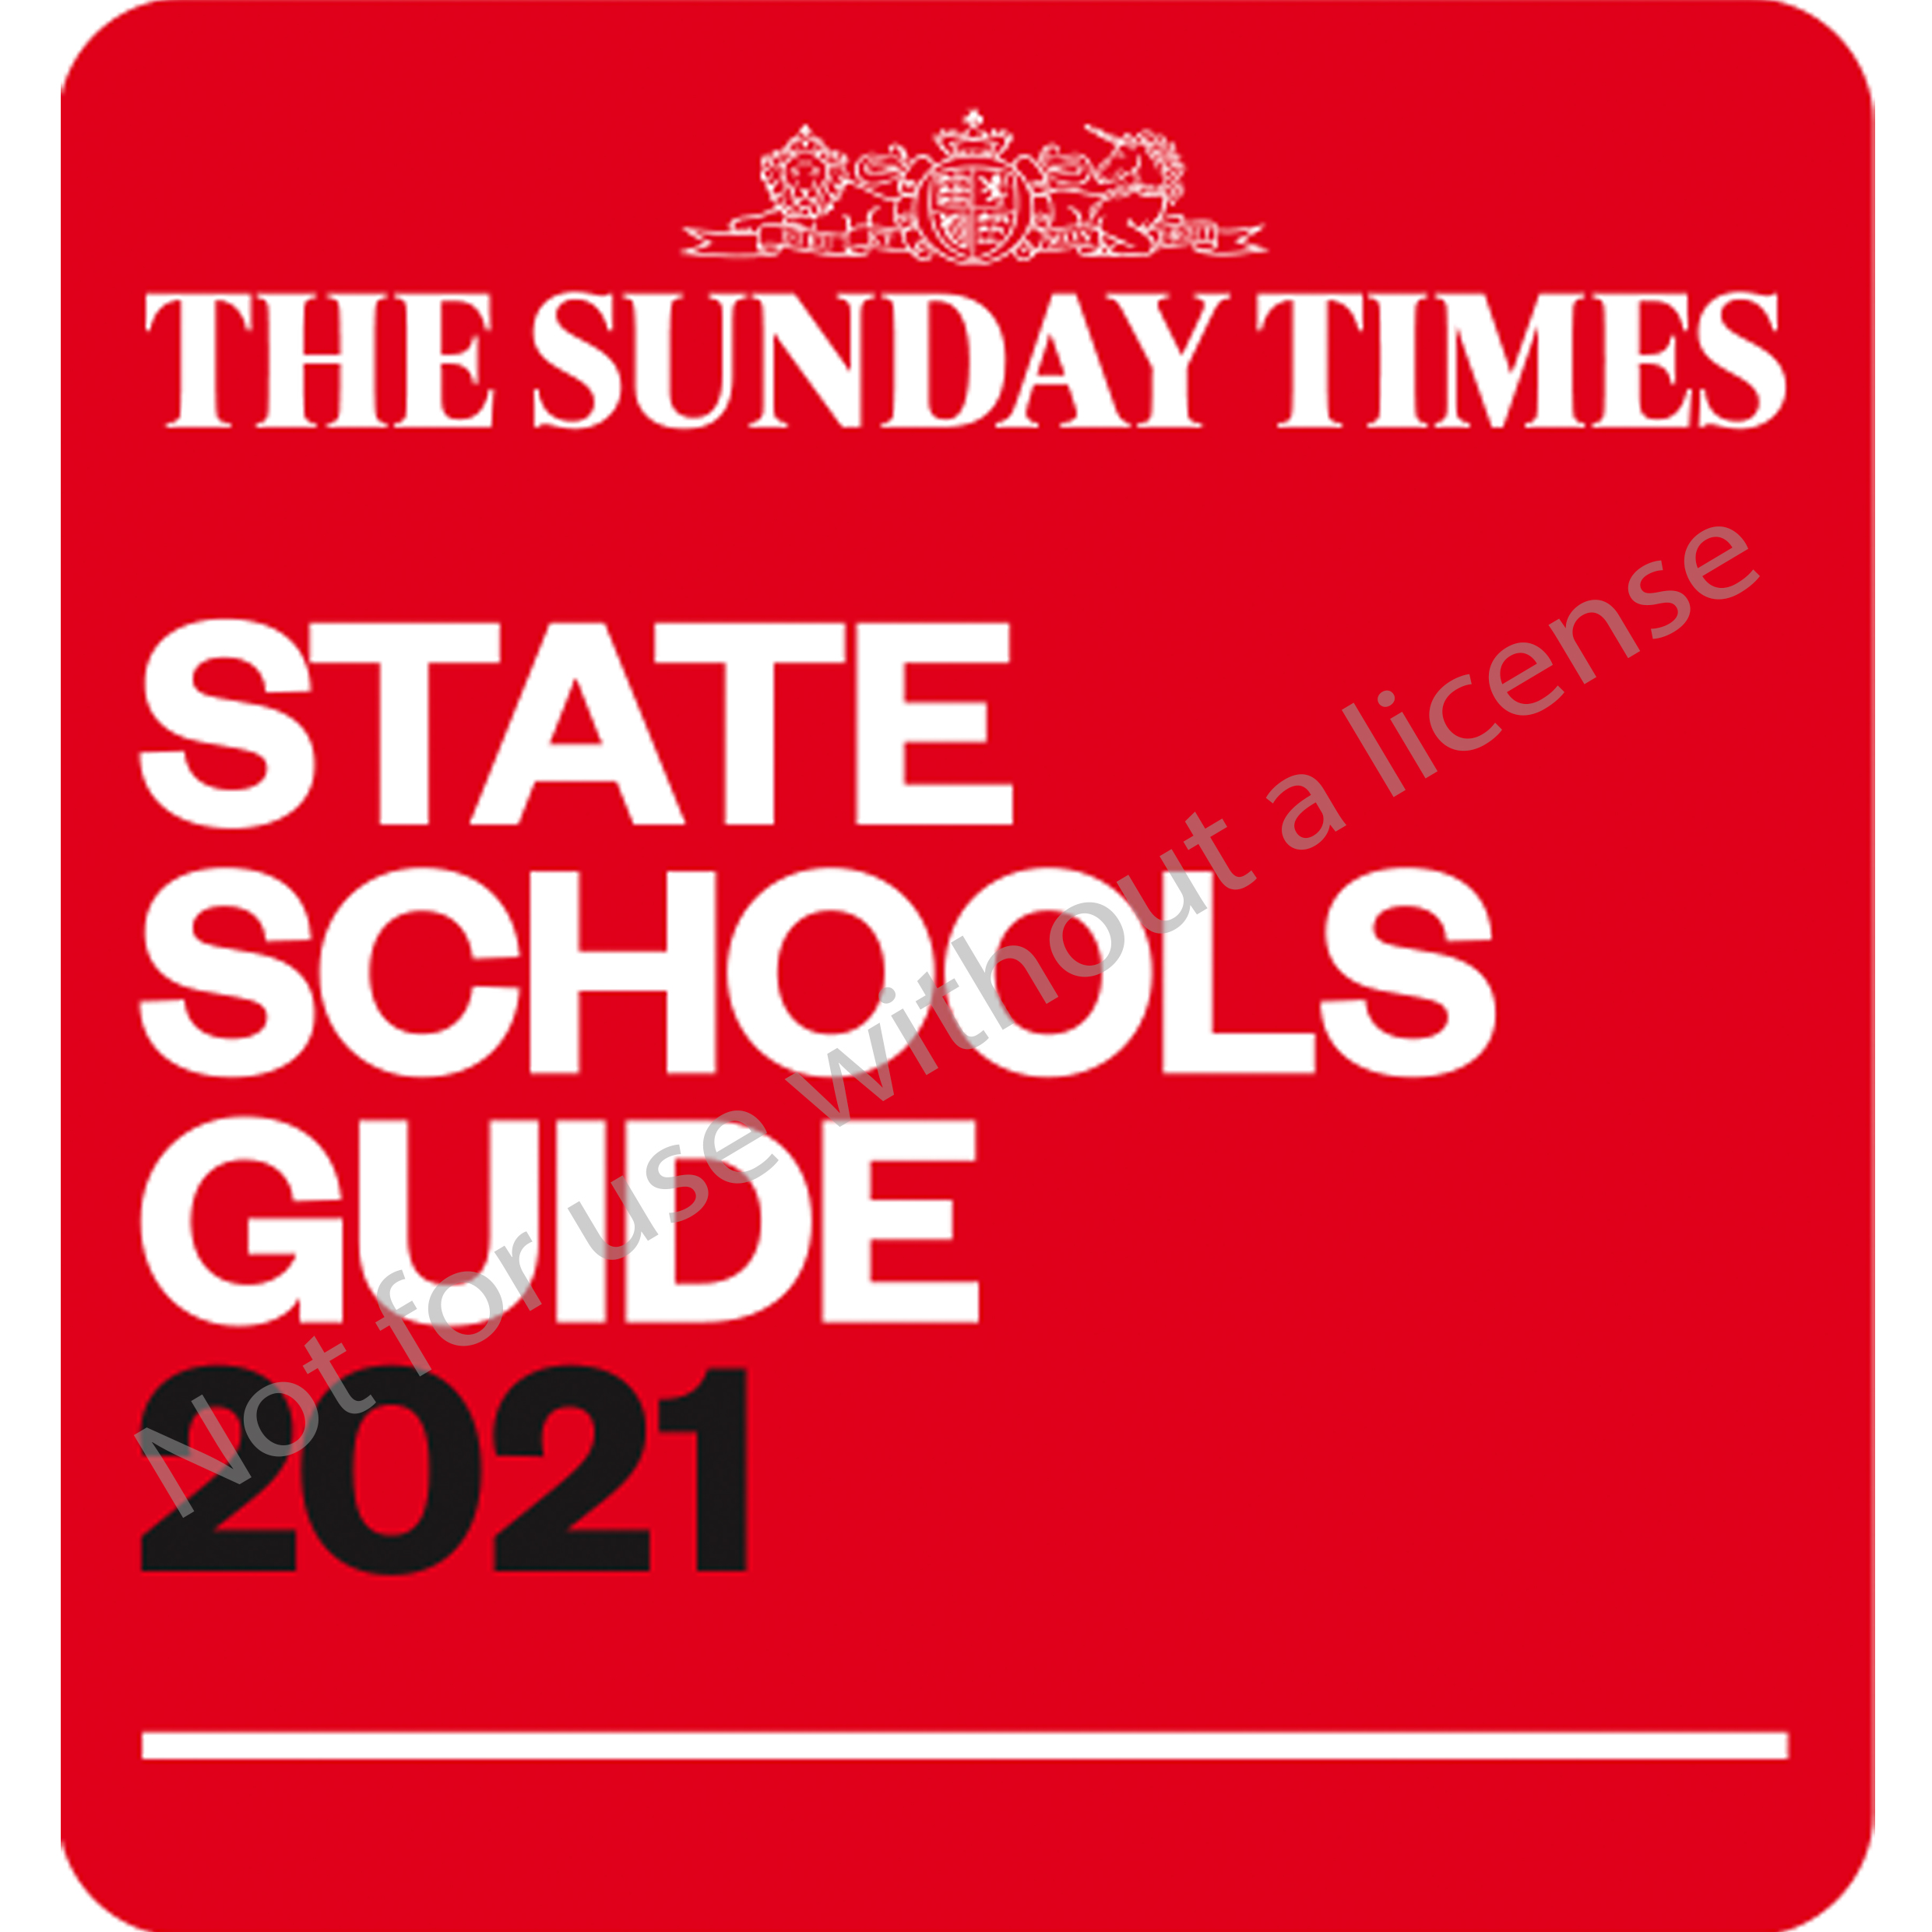 The Sunday Times Schools Guide 2021 - State